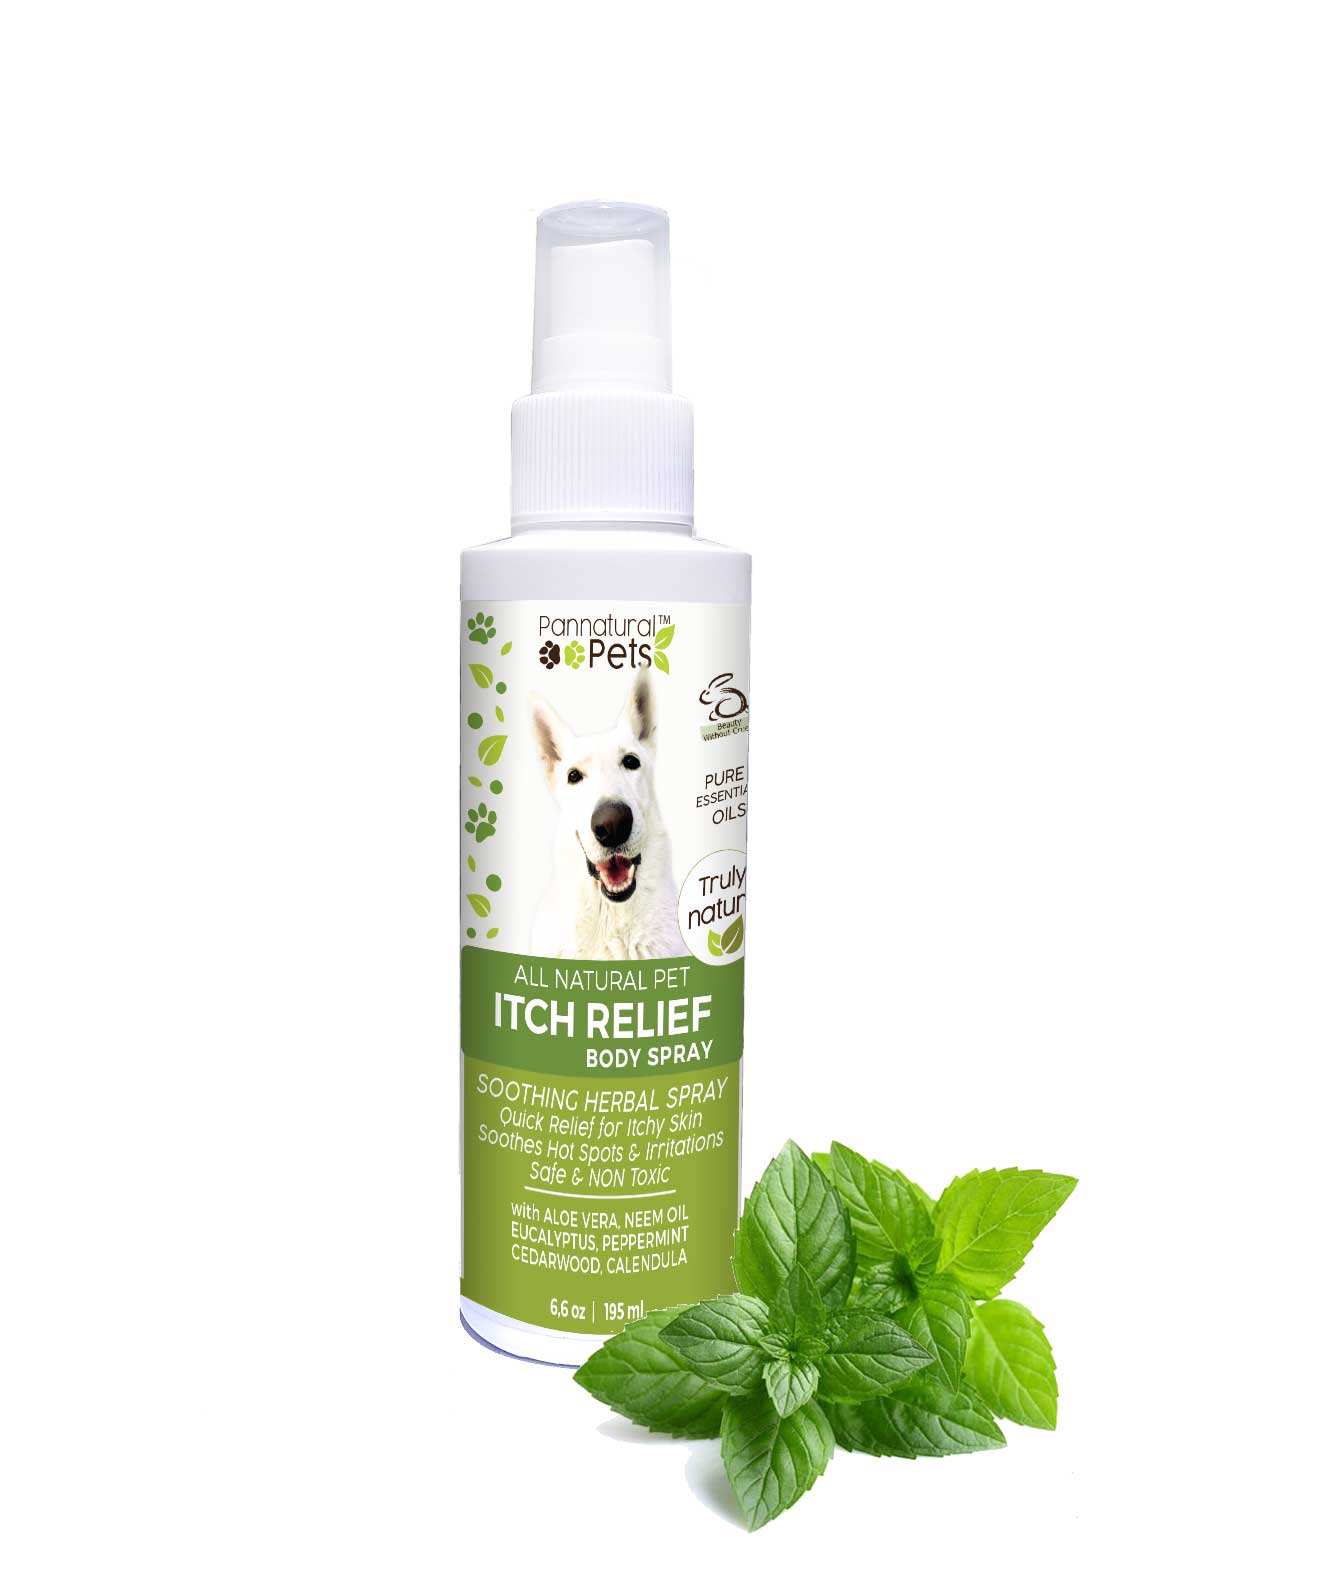 Pannatural Pet's Itch Relief Coat Spray 195ml